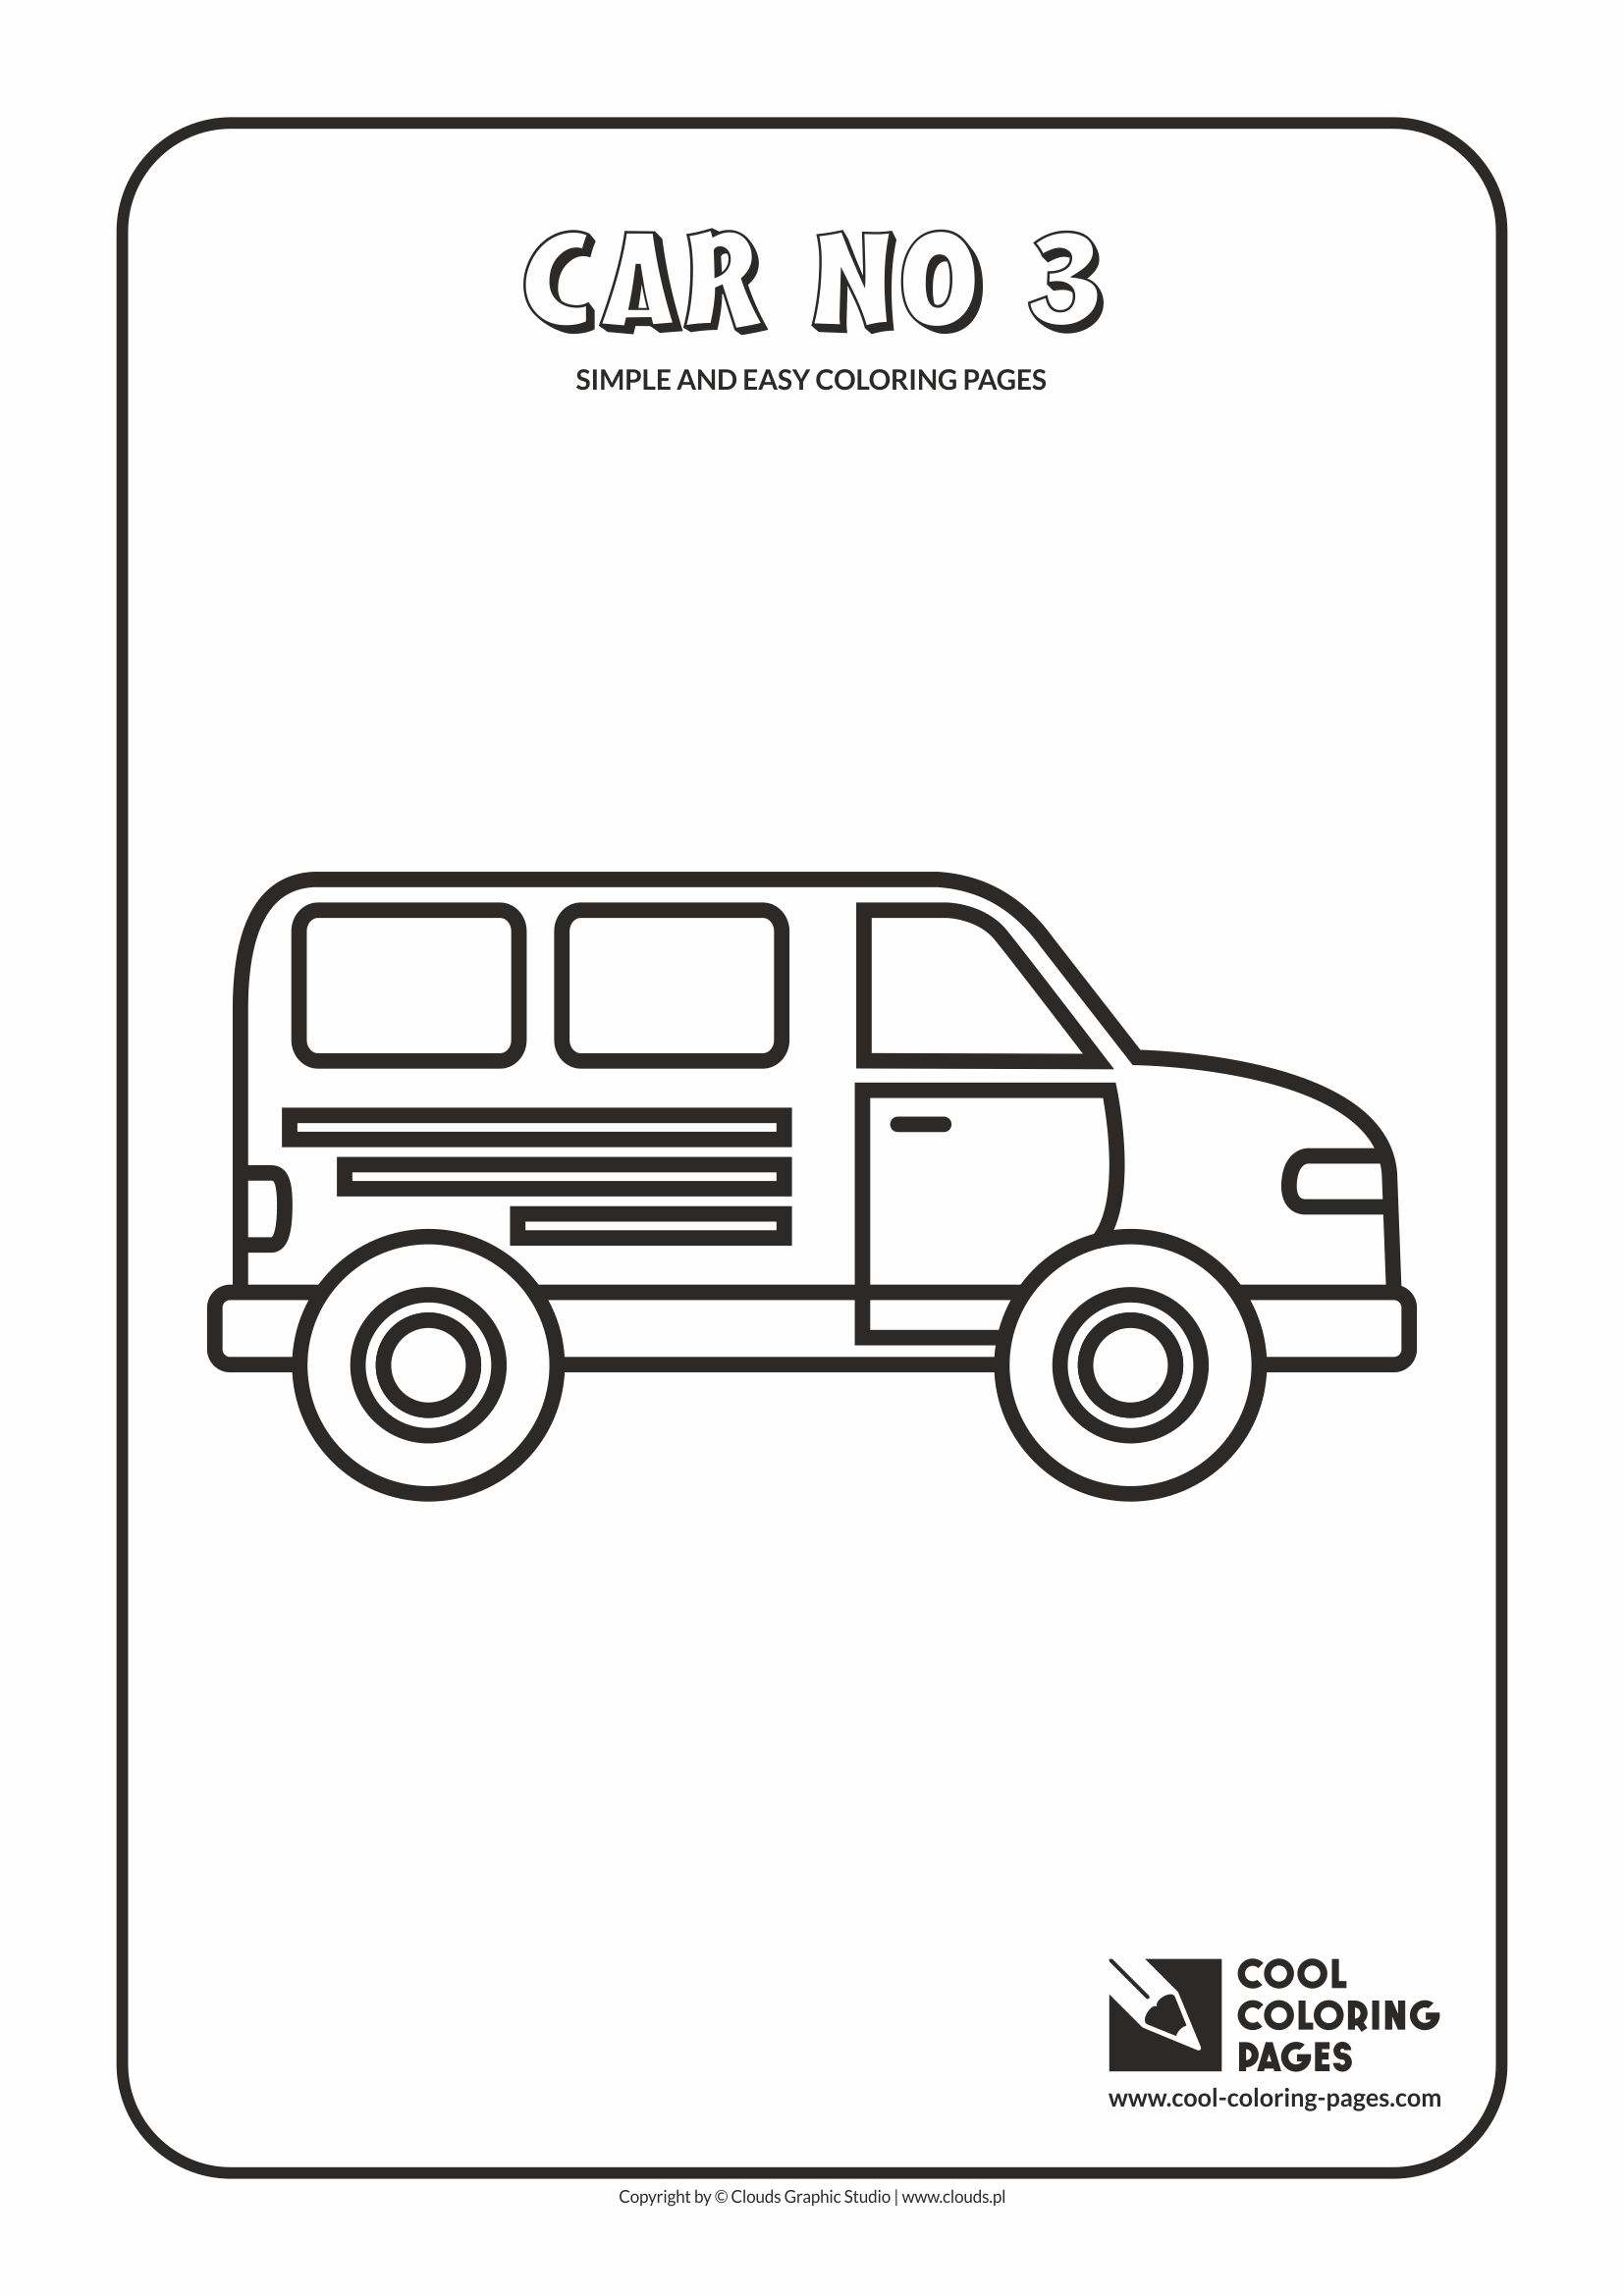 Simple and easy coloring pages for toddlers - Car no 3